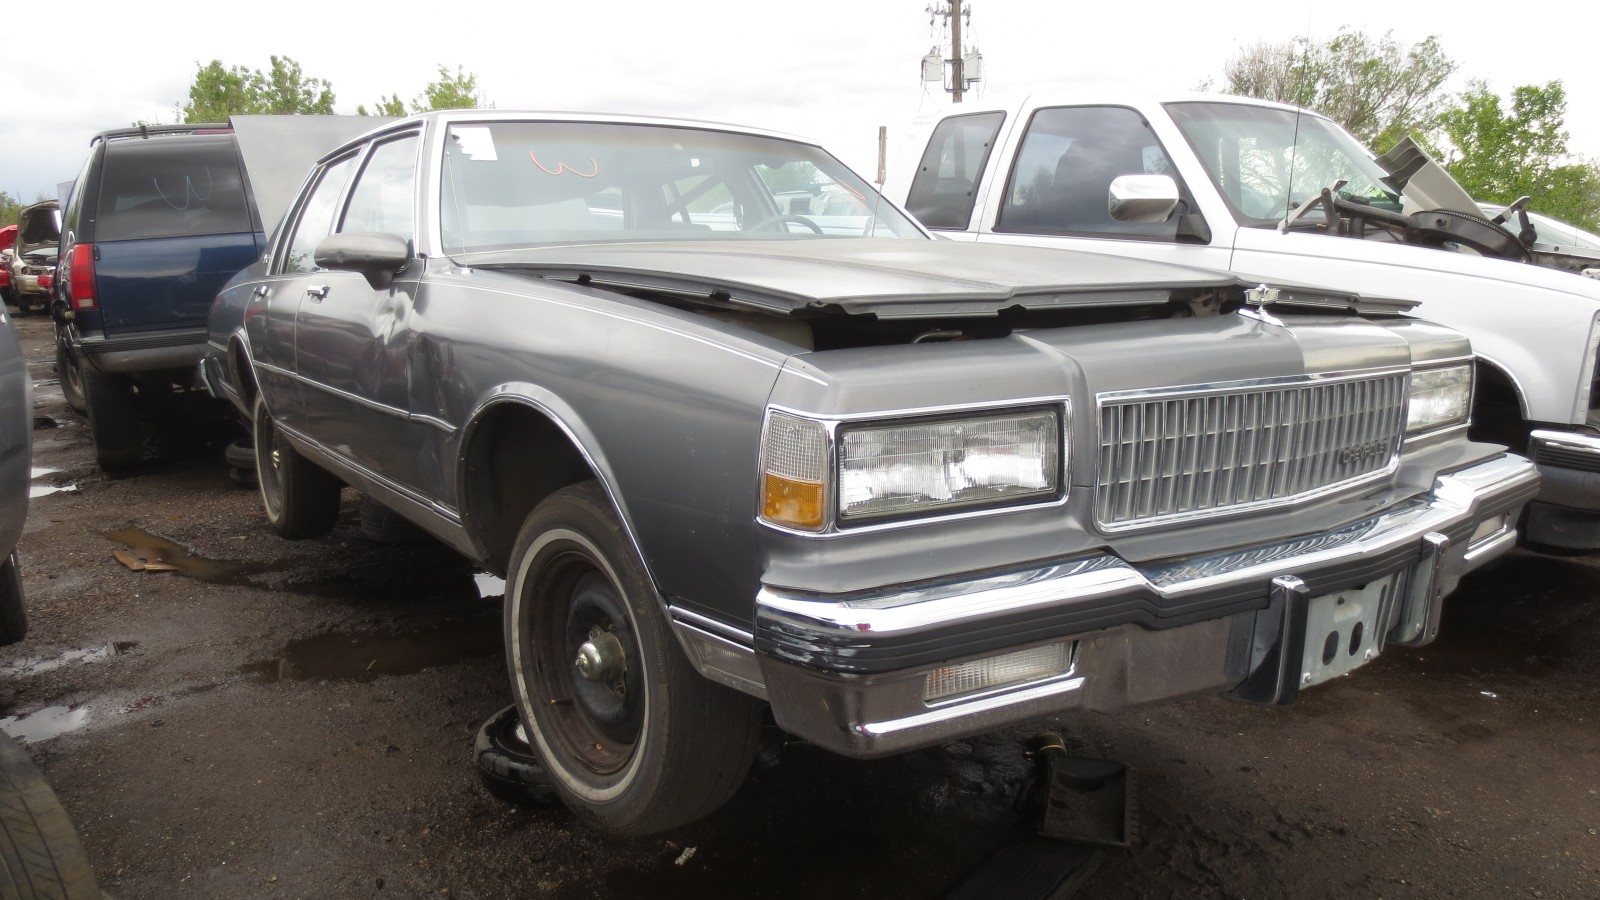 00 1988 chevrolet caprice down on the junkyard picture courtesy of murilee martin